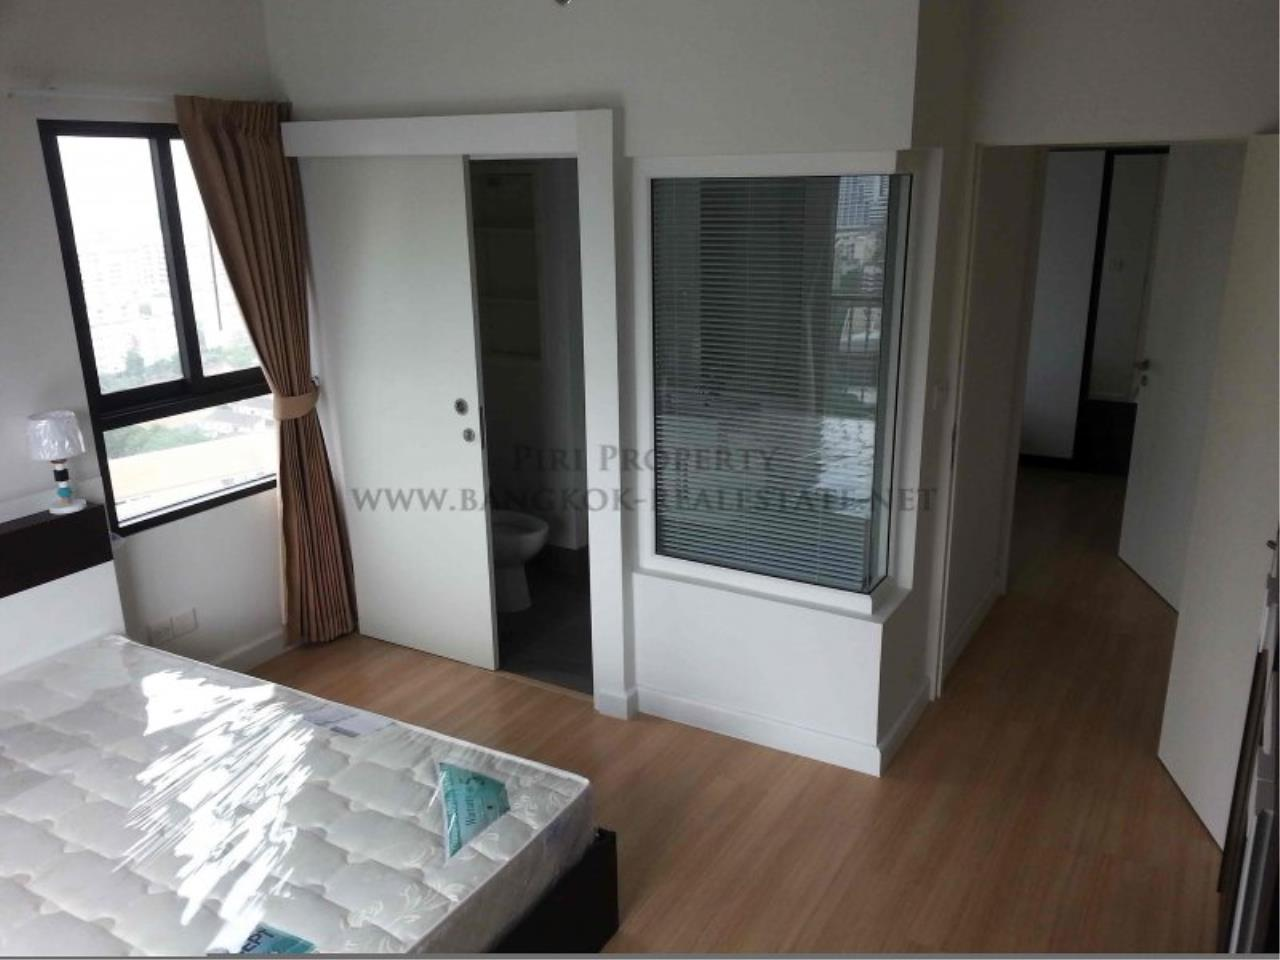 Piri Property Agency's High Floor Condo n the Seed Mingle - 2 Bedroom for Rent 2